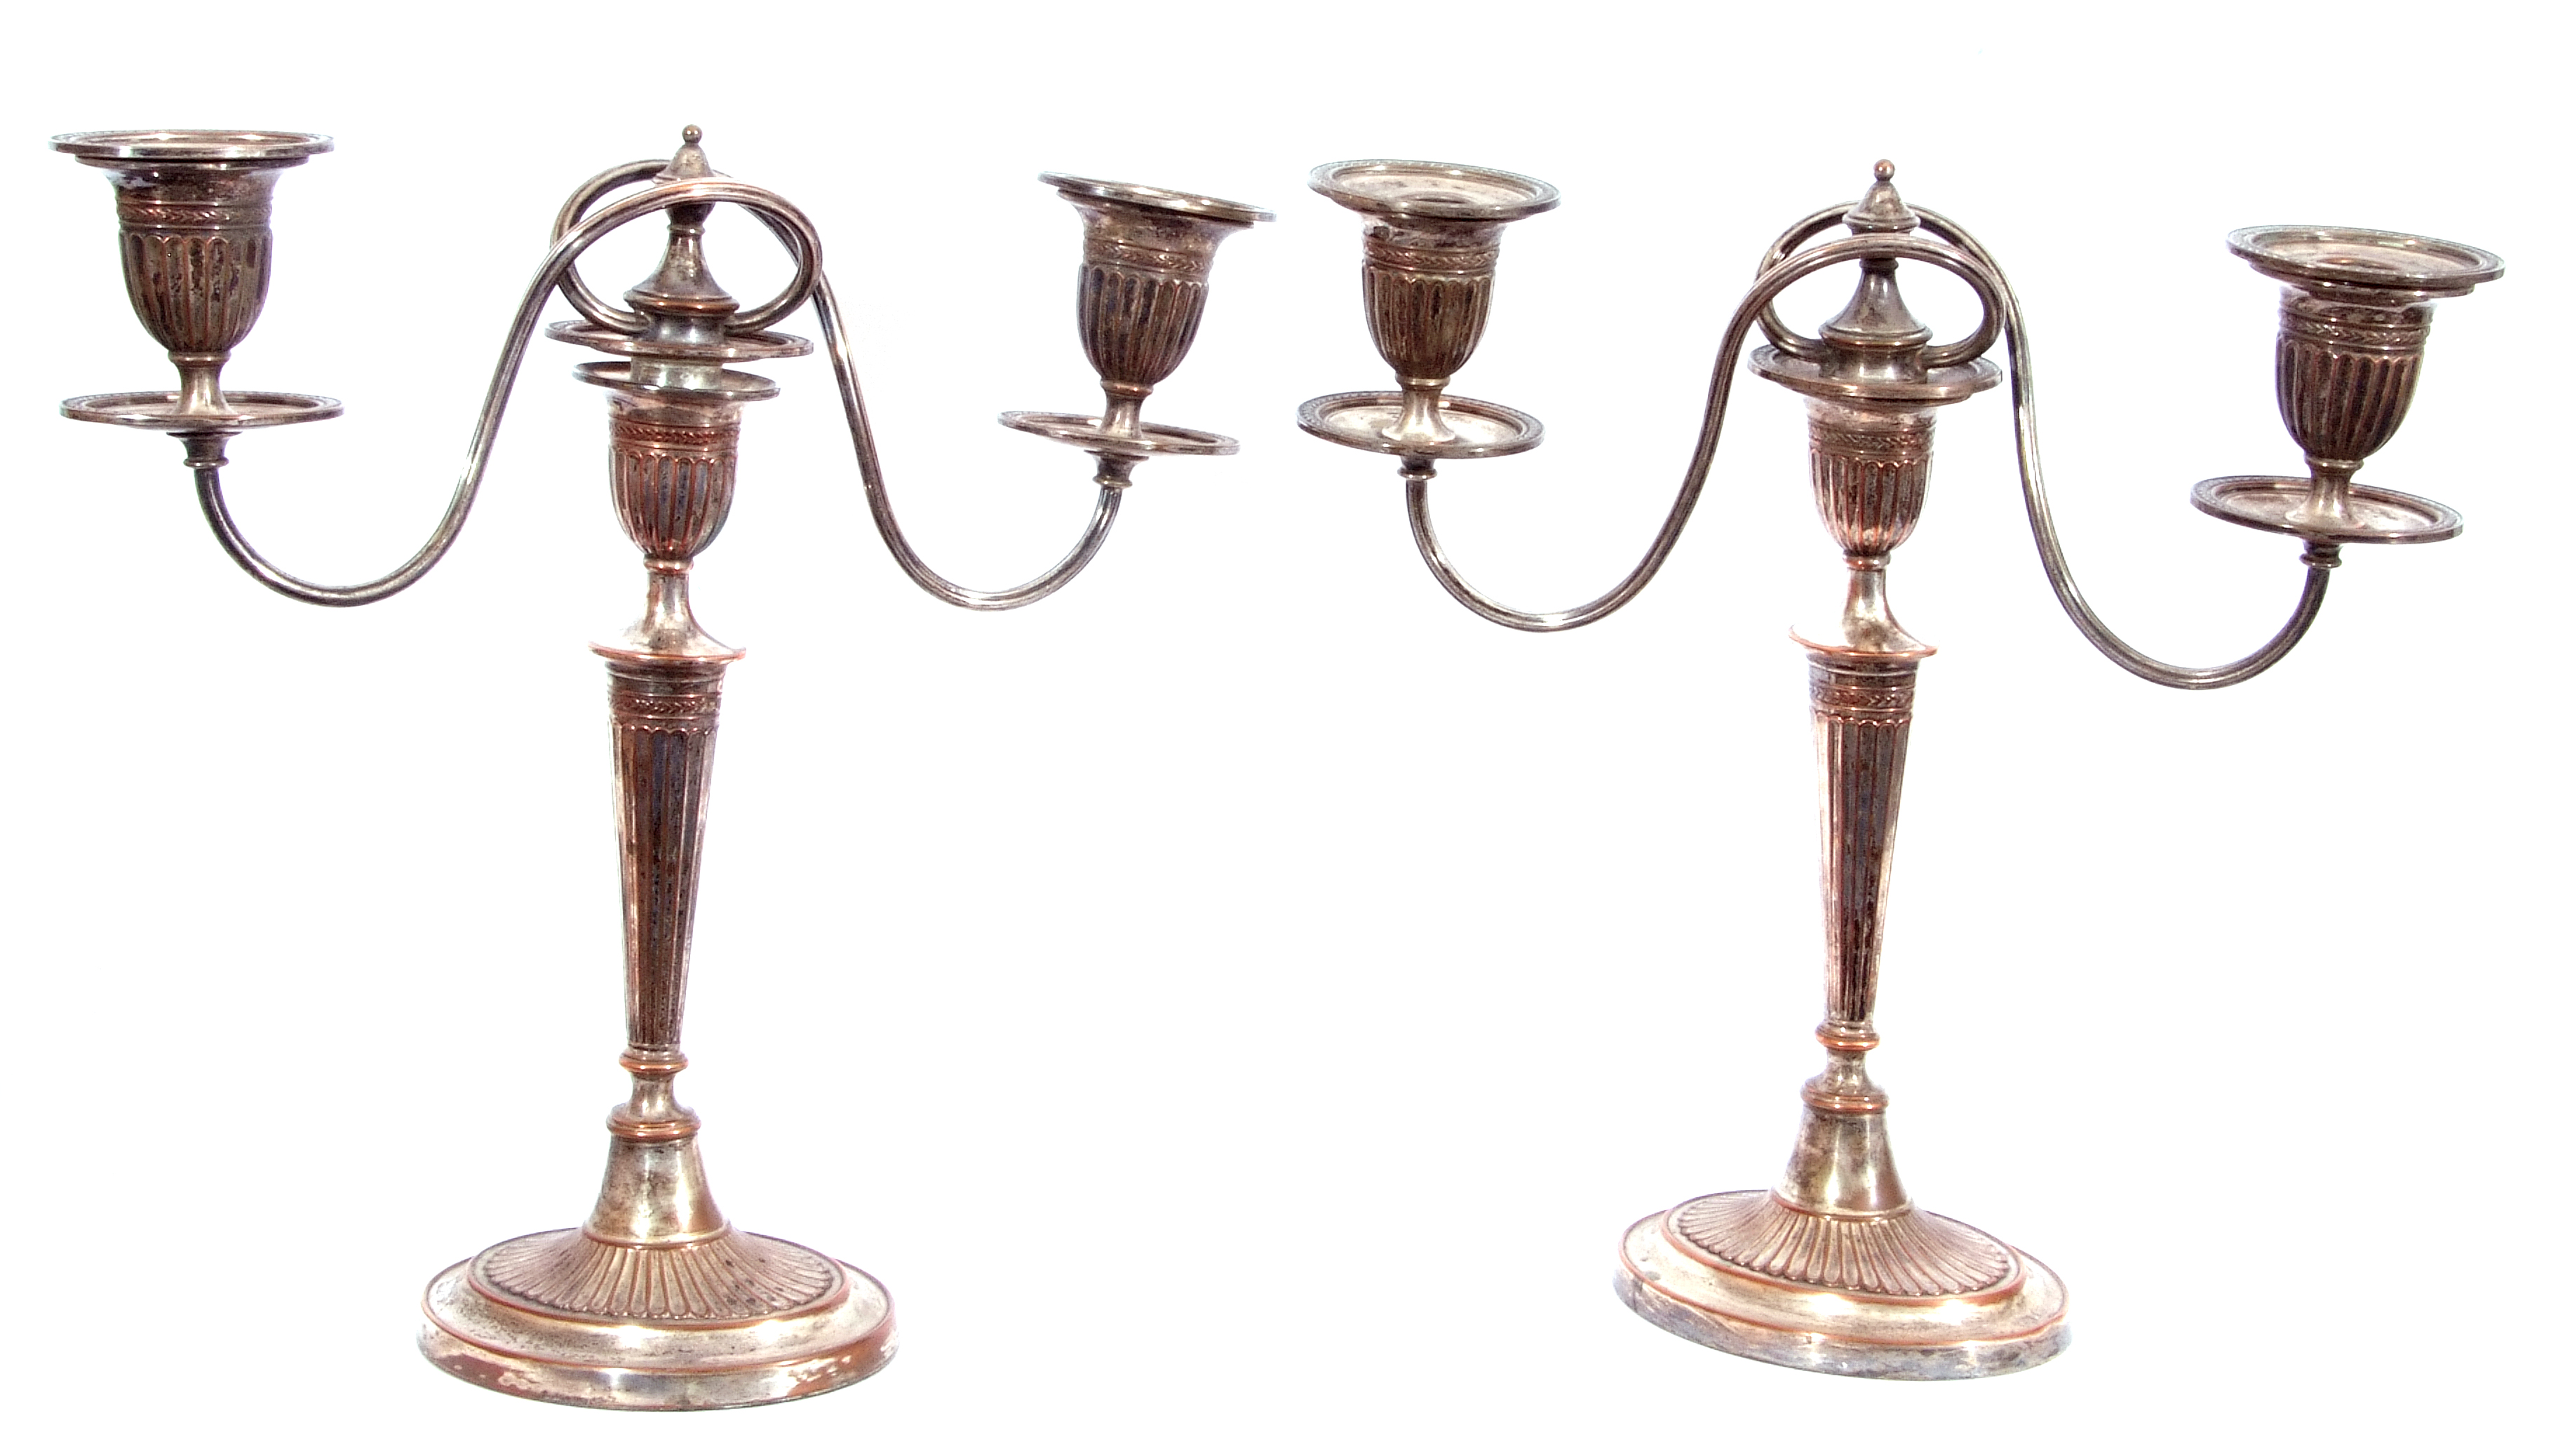 Pair of Old Sheffield Plate George IV Adam style three-light candelabra, 36cm tall (a/f) - Image 2 of 4